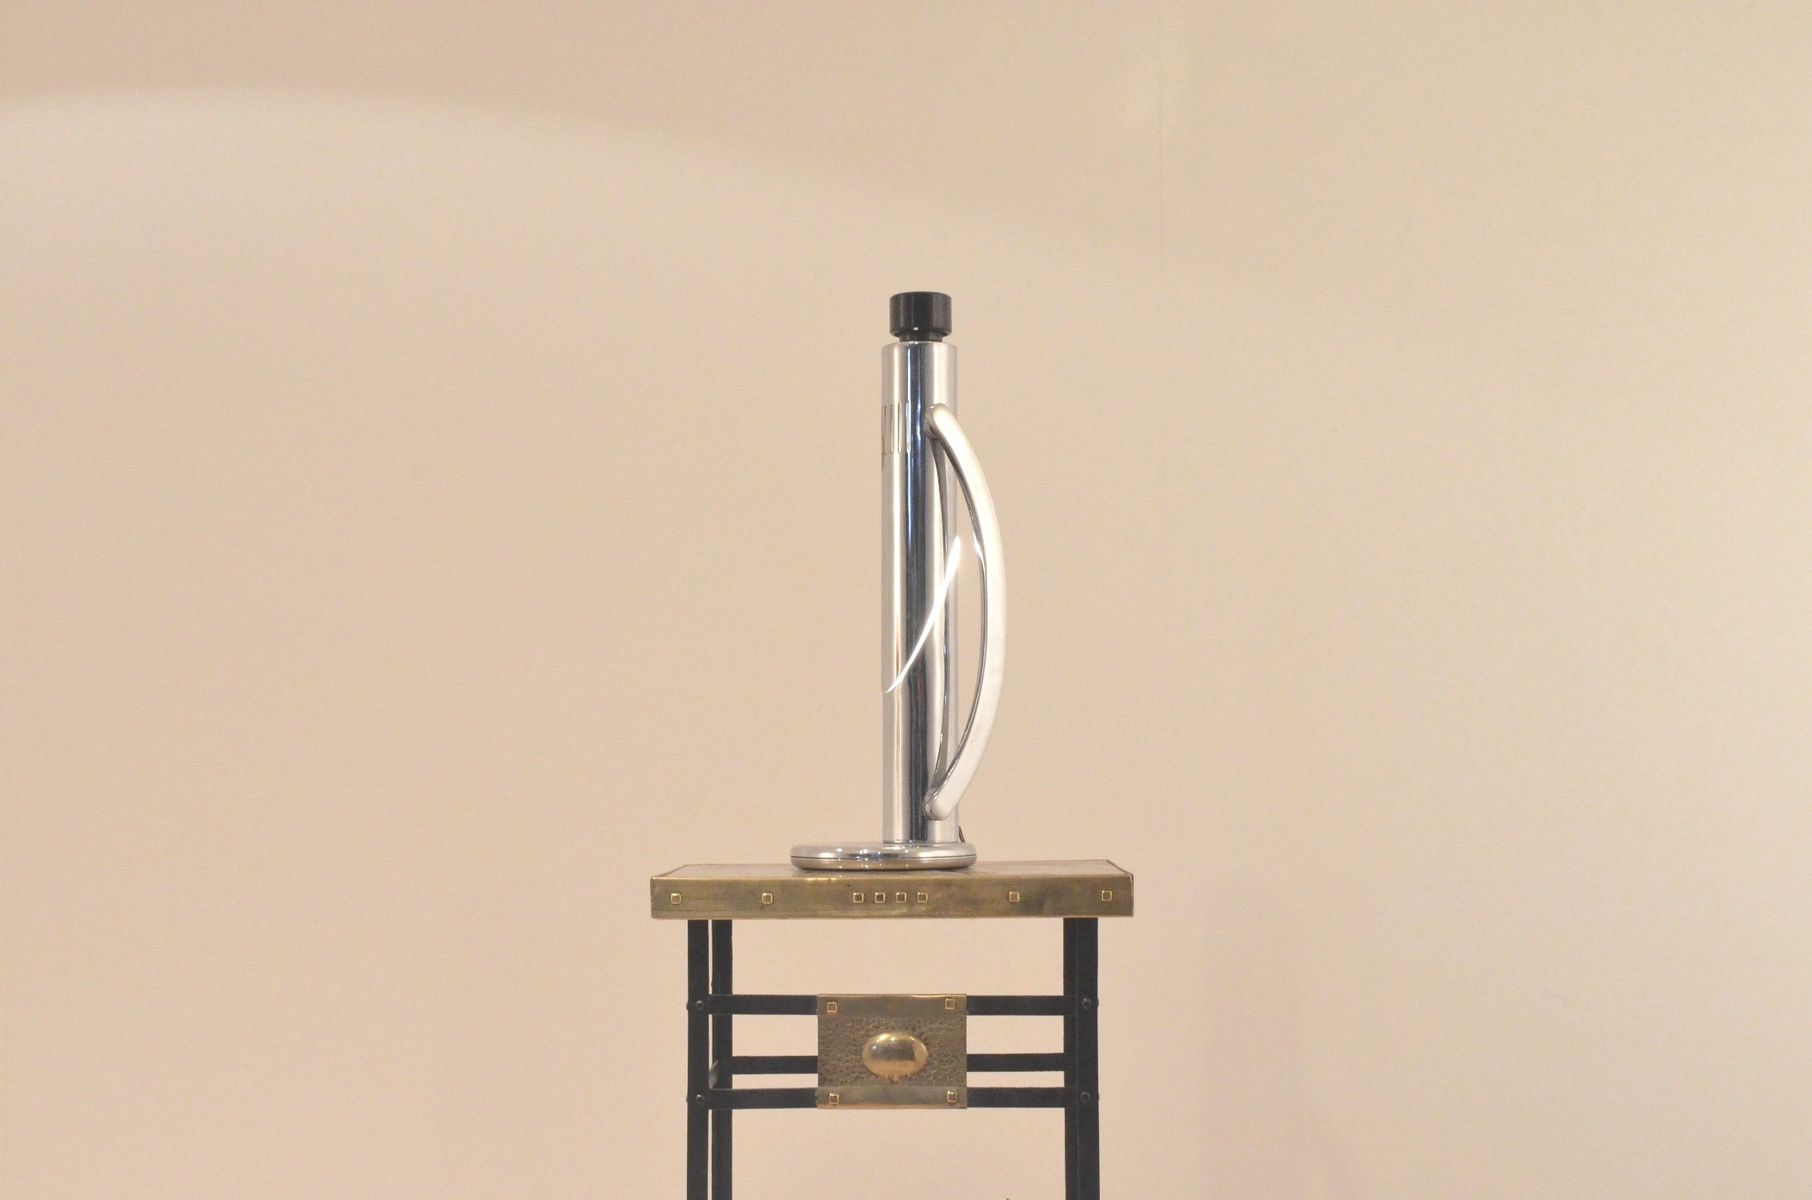 Spanish Tharsis Chrome Adjustable Telescopic Table Lamp From Fase, 1970s